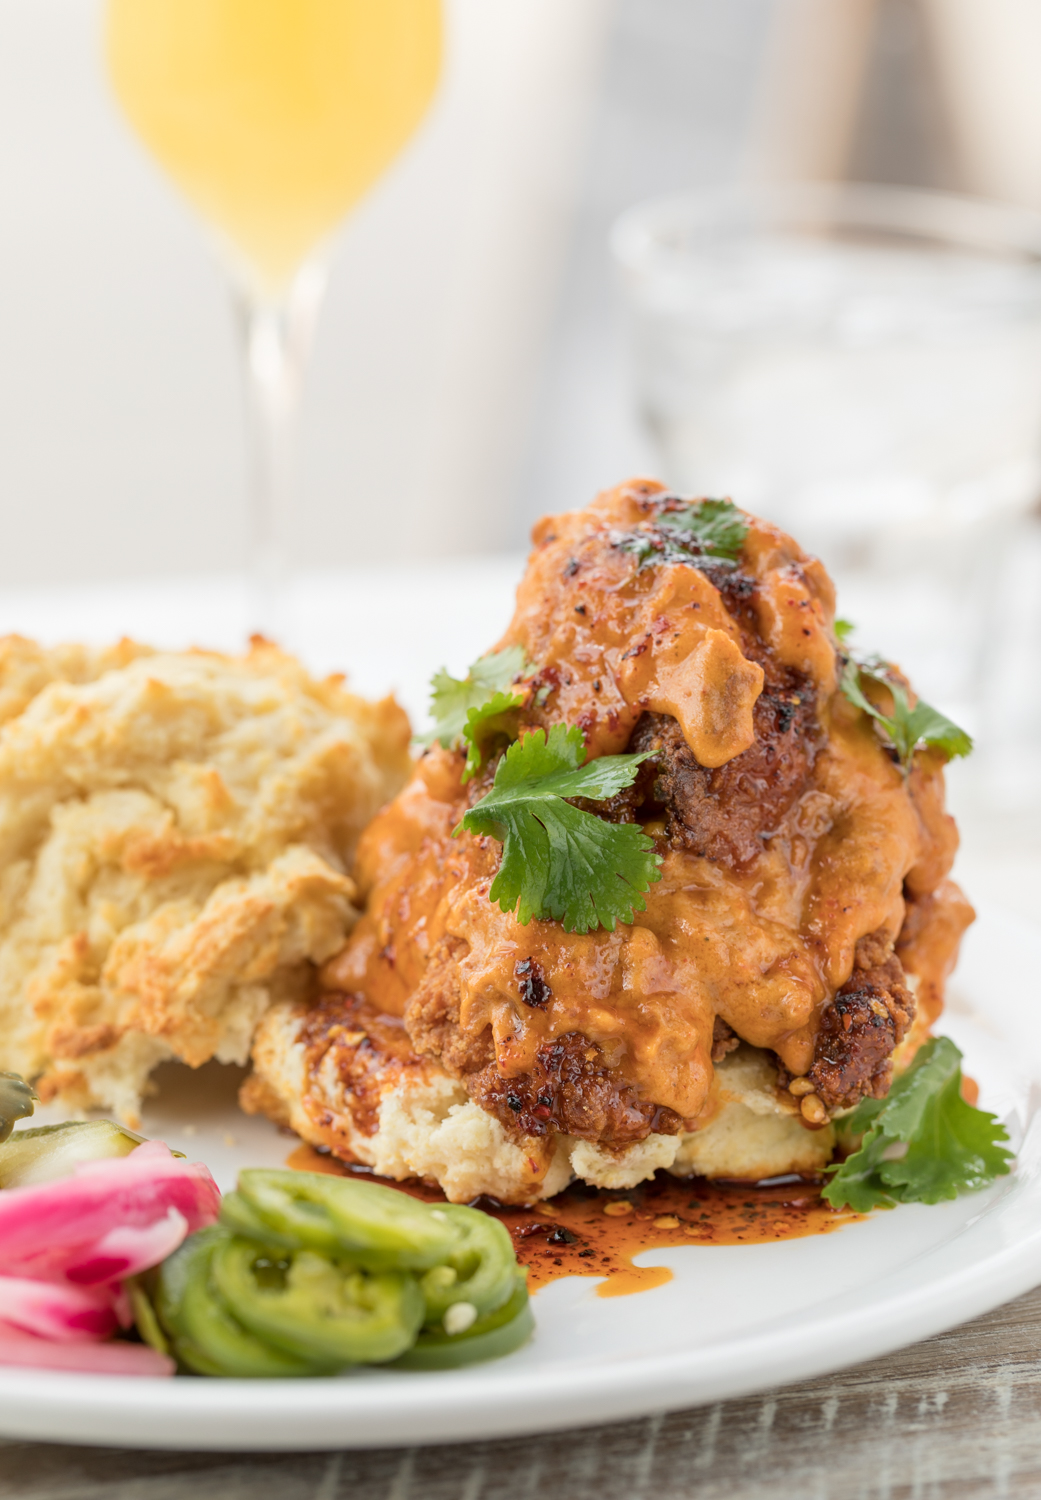 Fried Chicken in a Biscuit: fried chicken, buttermilk biscuit, with spicy chorizo gravy / Image: Marlene Rounds // Published: 1.6.19